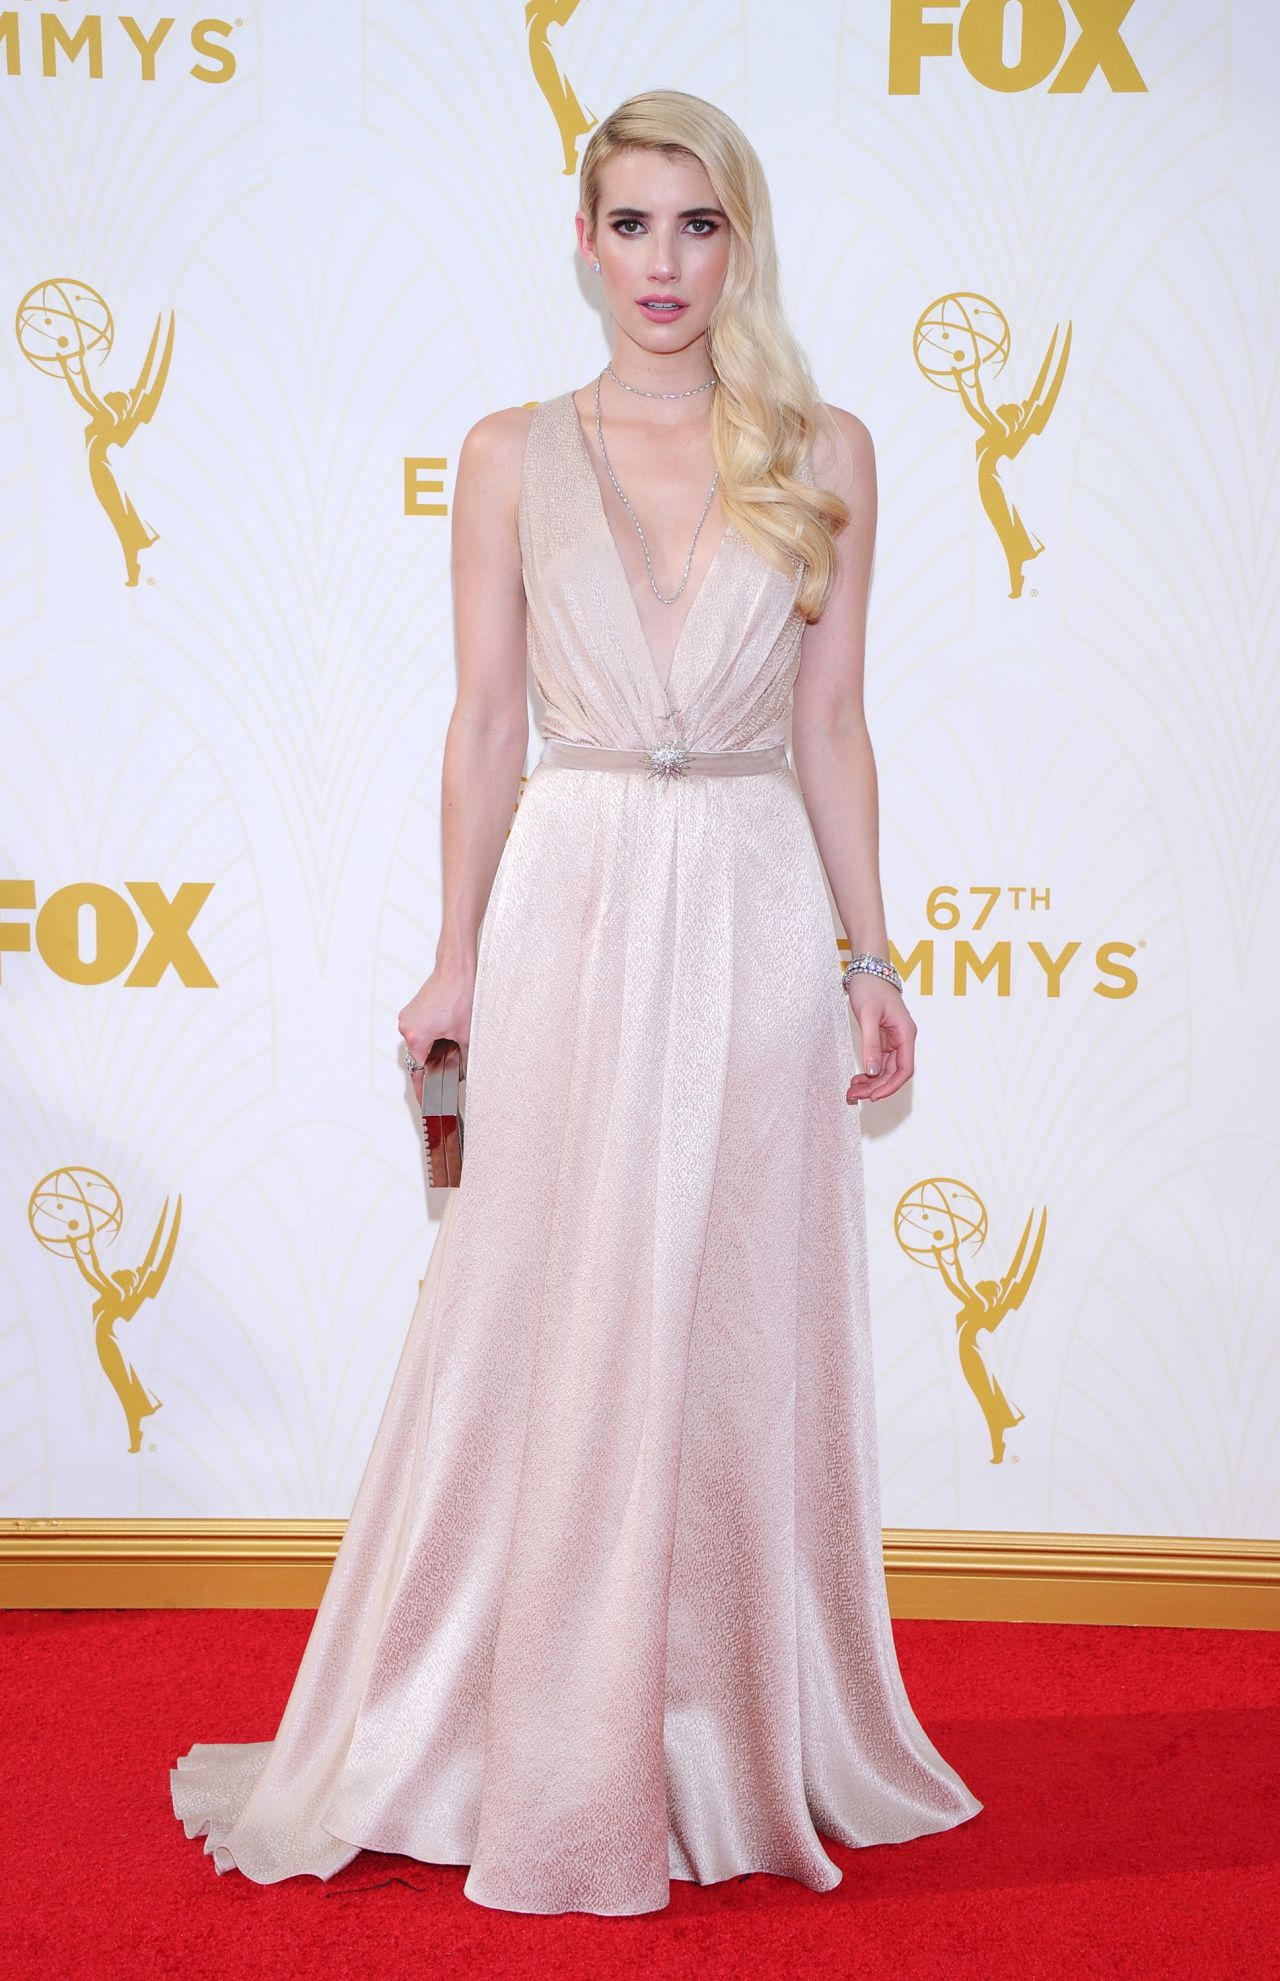 Daytime Emmy Awards 2018 Red Carpet Fashion: See All the 61